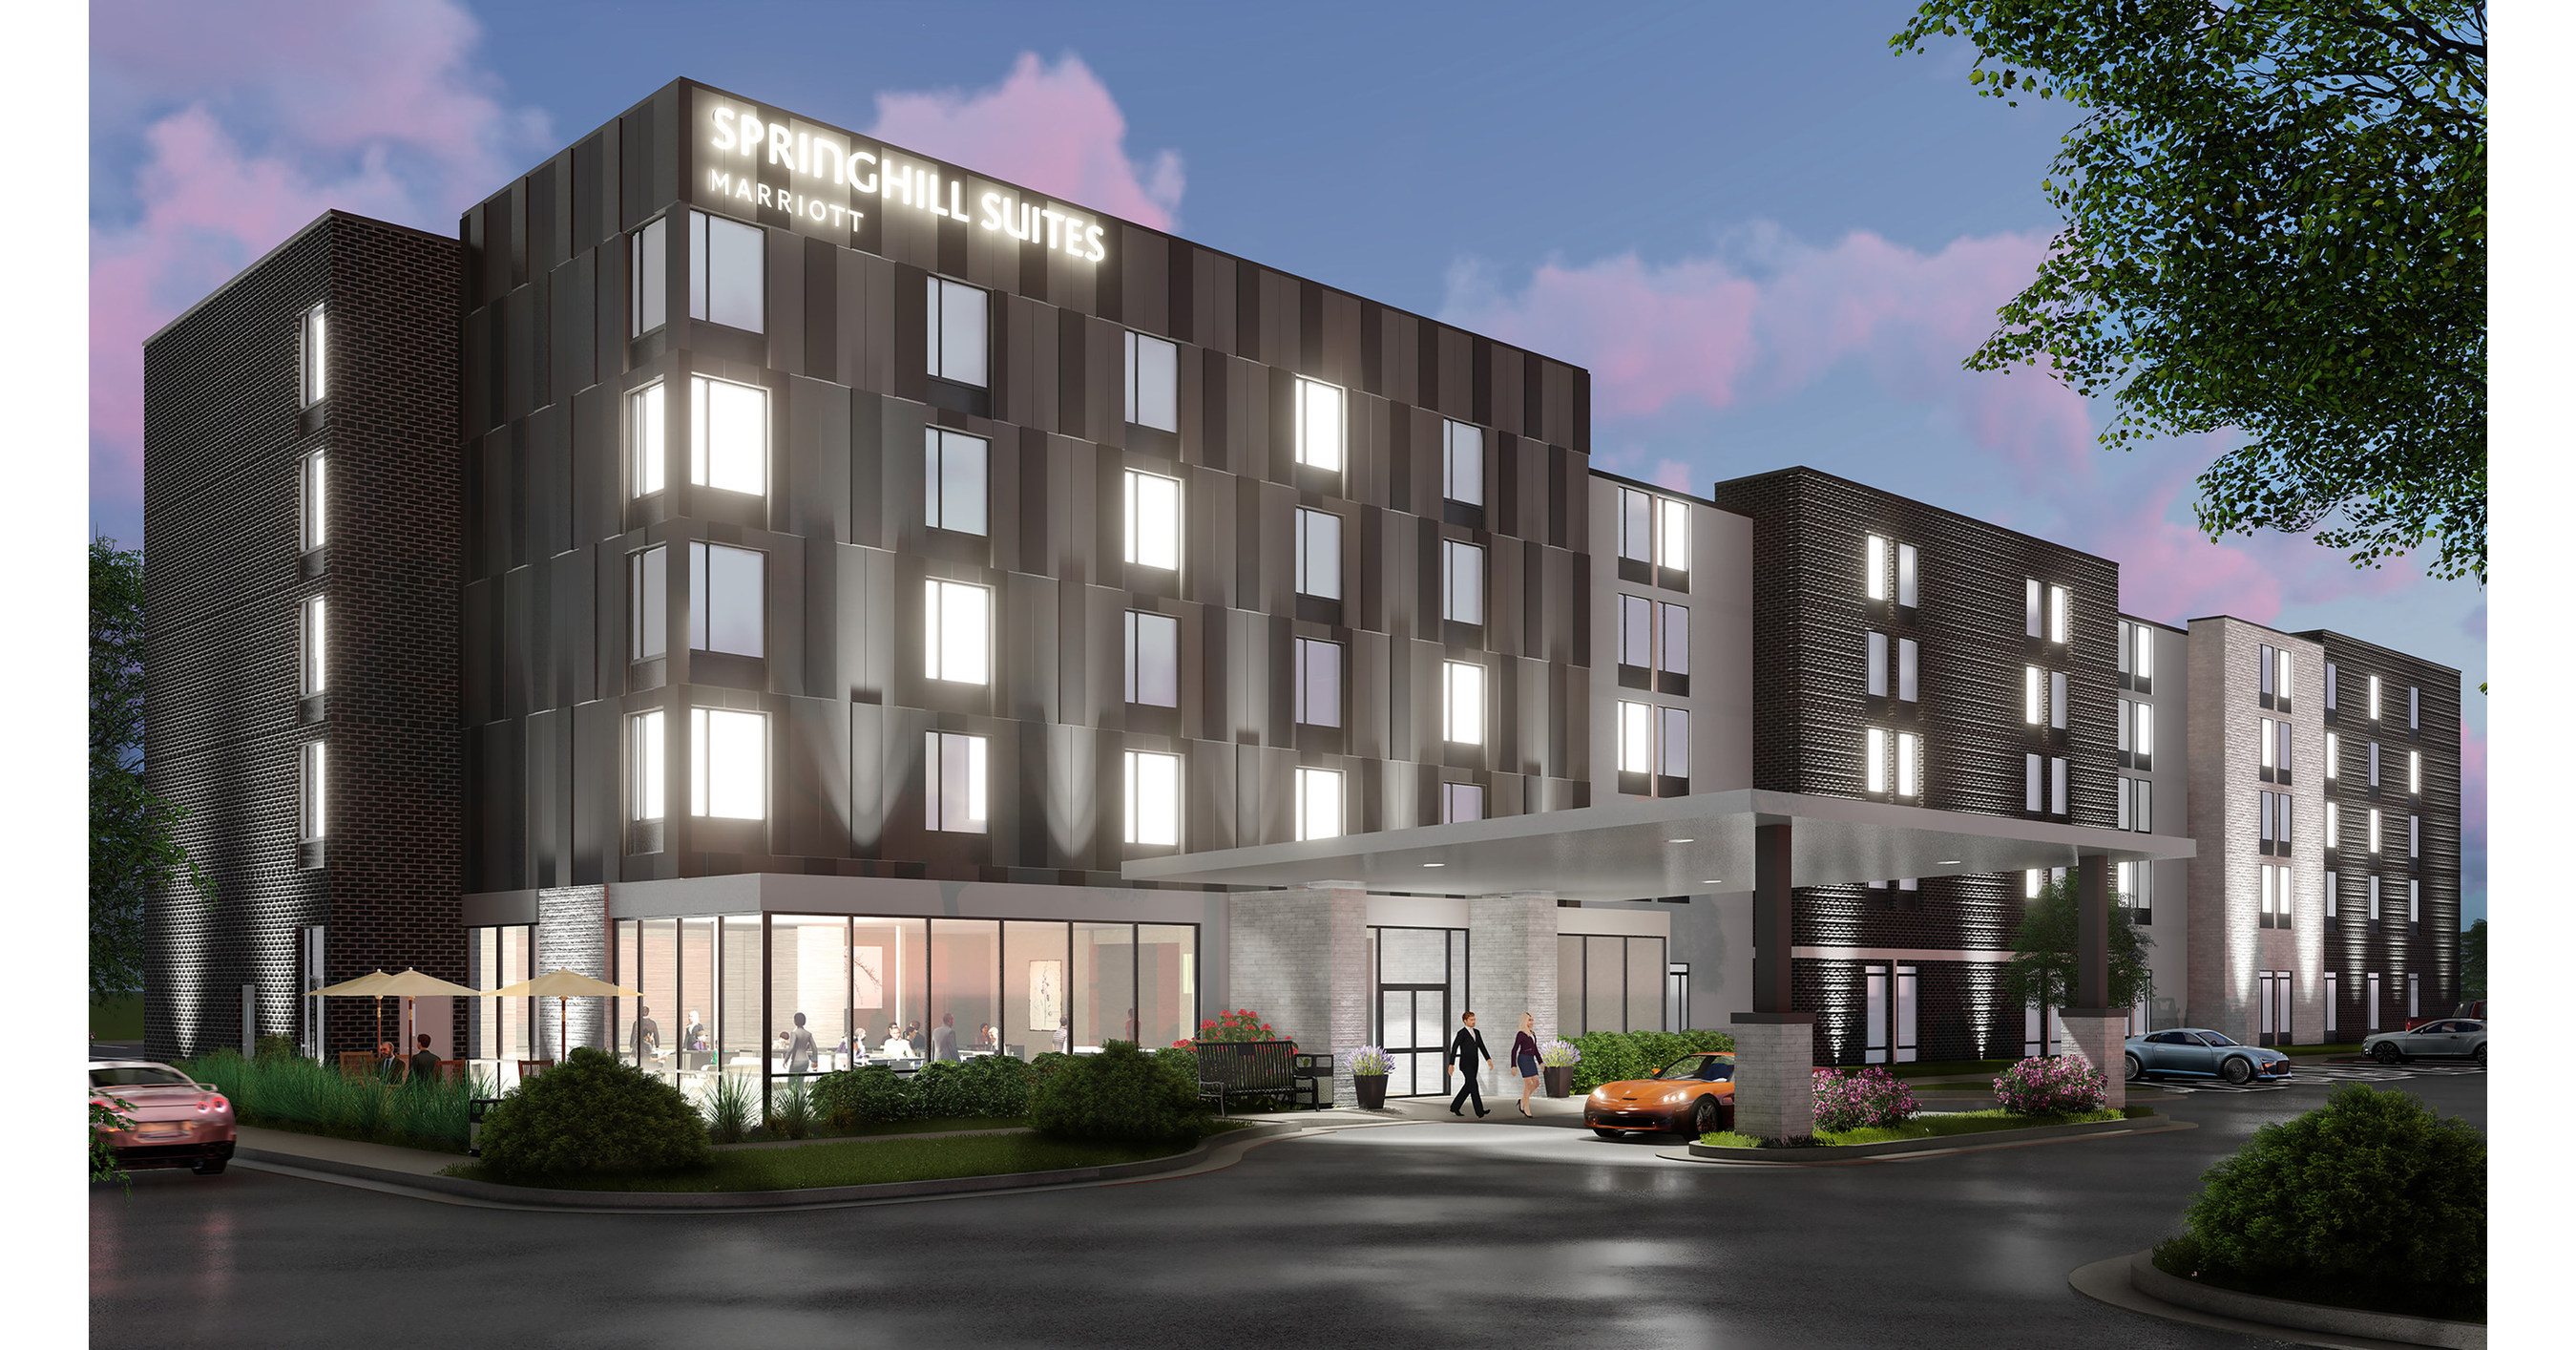 SpringHill Suites Westfield On Track for May 2019 Opening